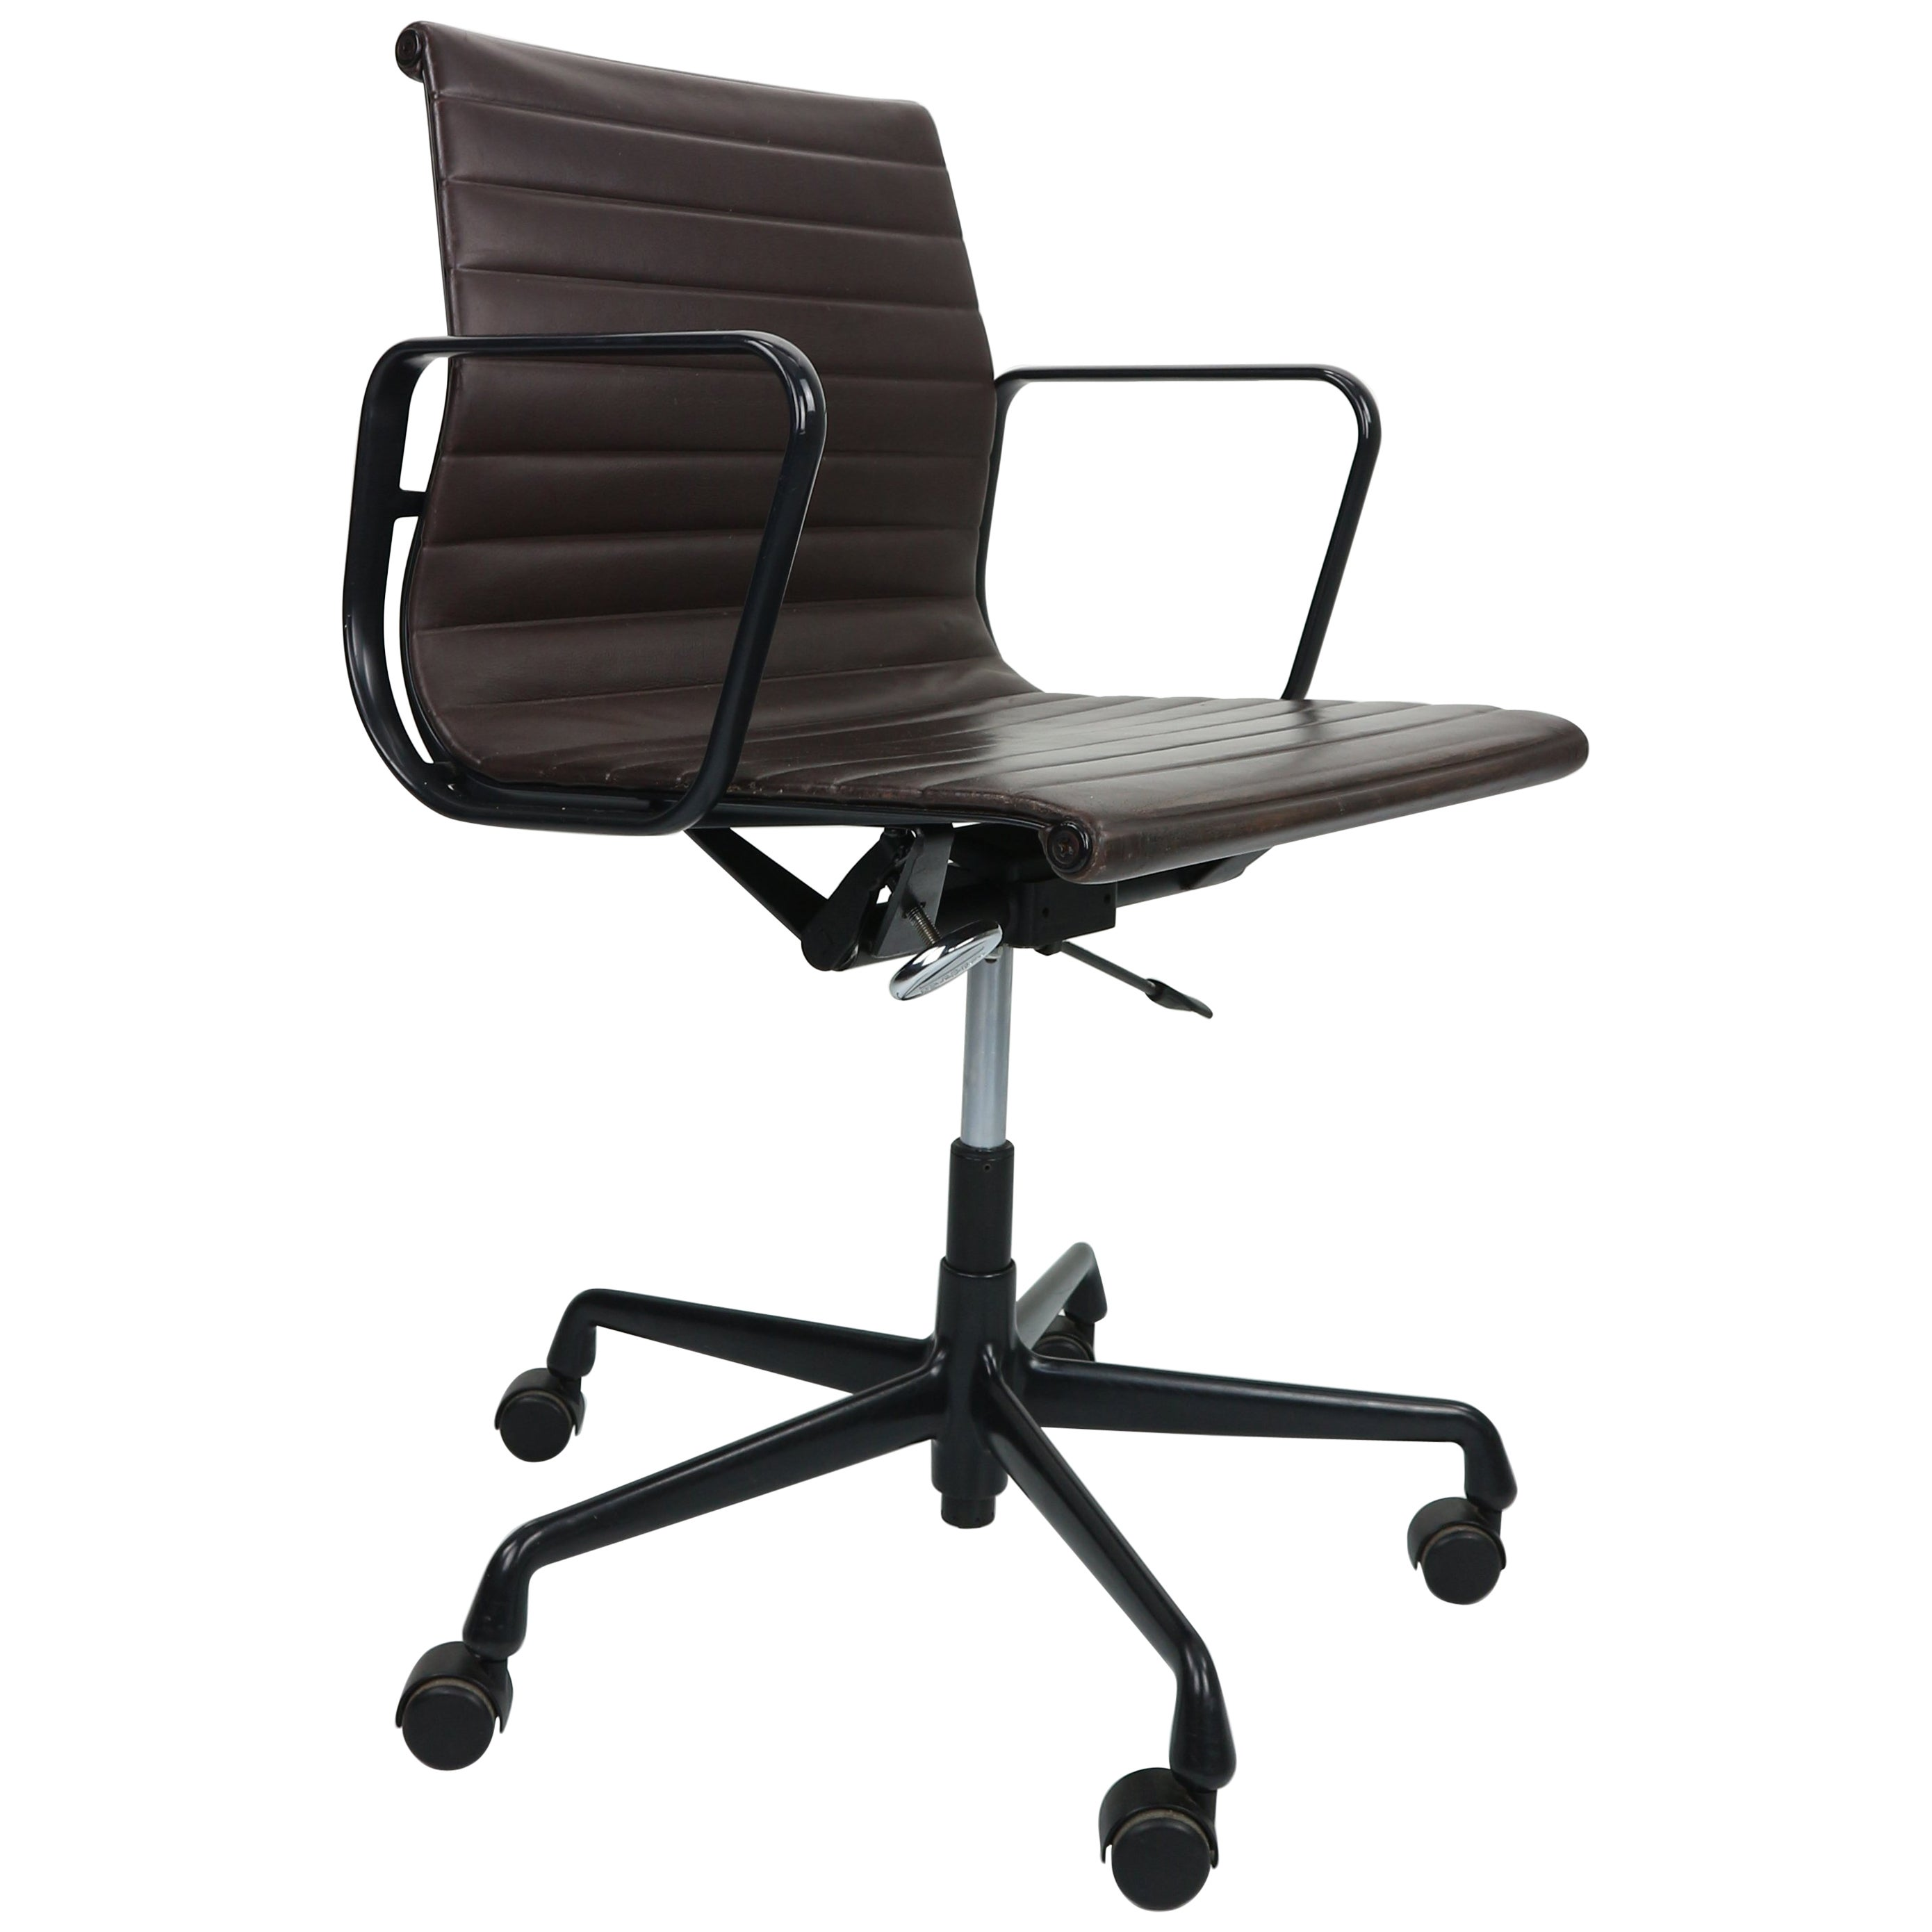 Vitra Office Chair Vintage Ea 117 Office Chair By Charles Eames For Vitra In Leather